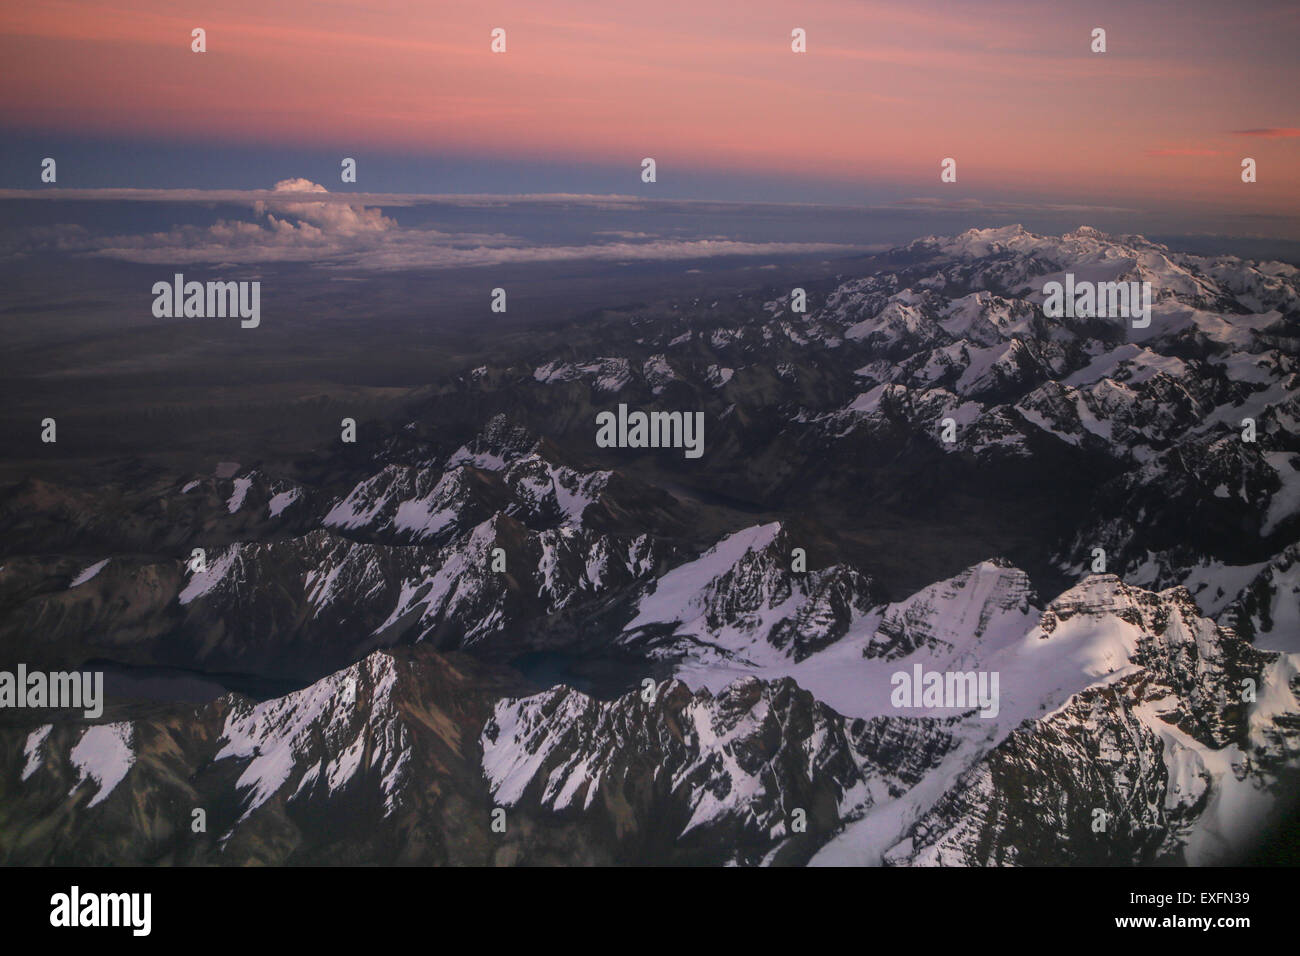 snow-capped view over the Andes mountains taken from the plane - Stock Image